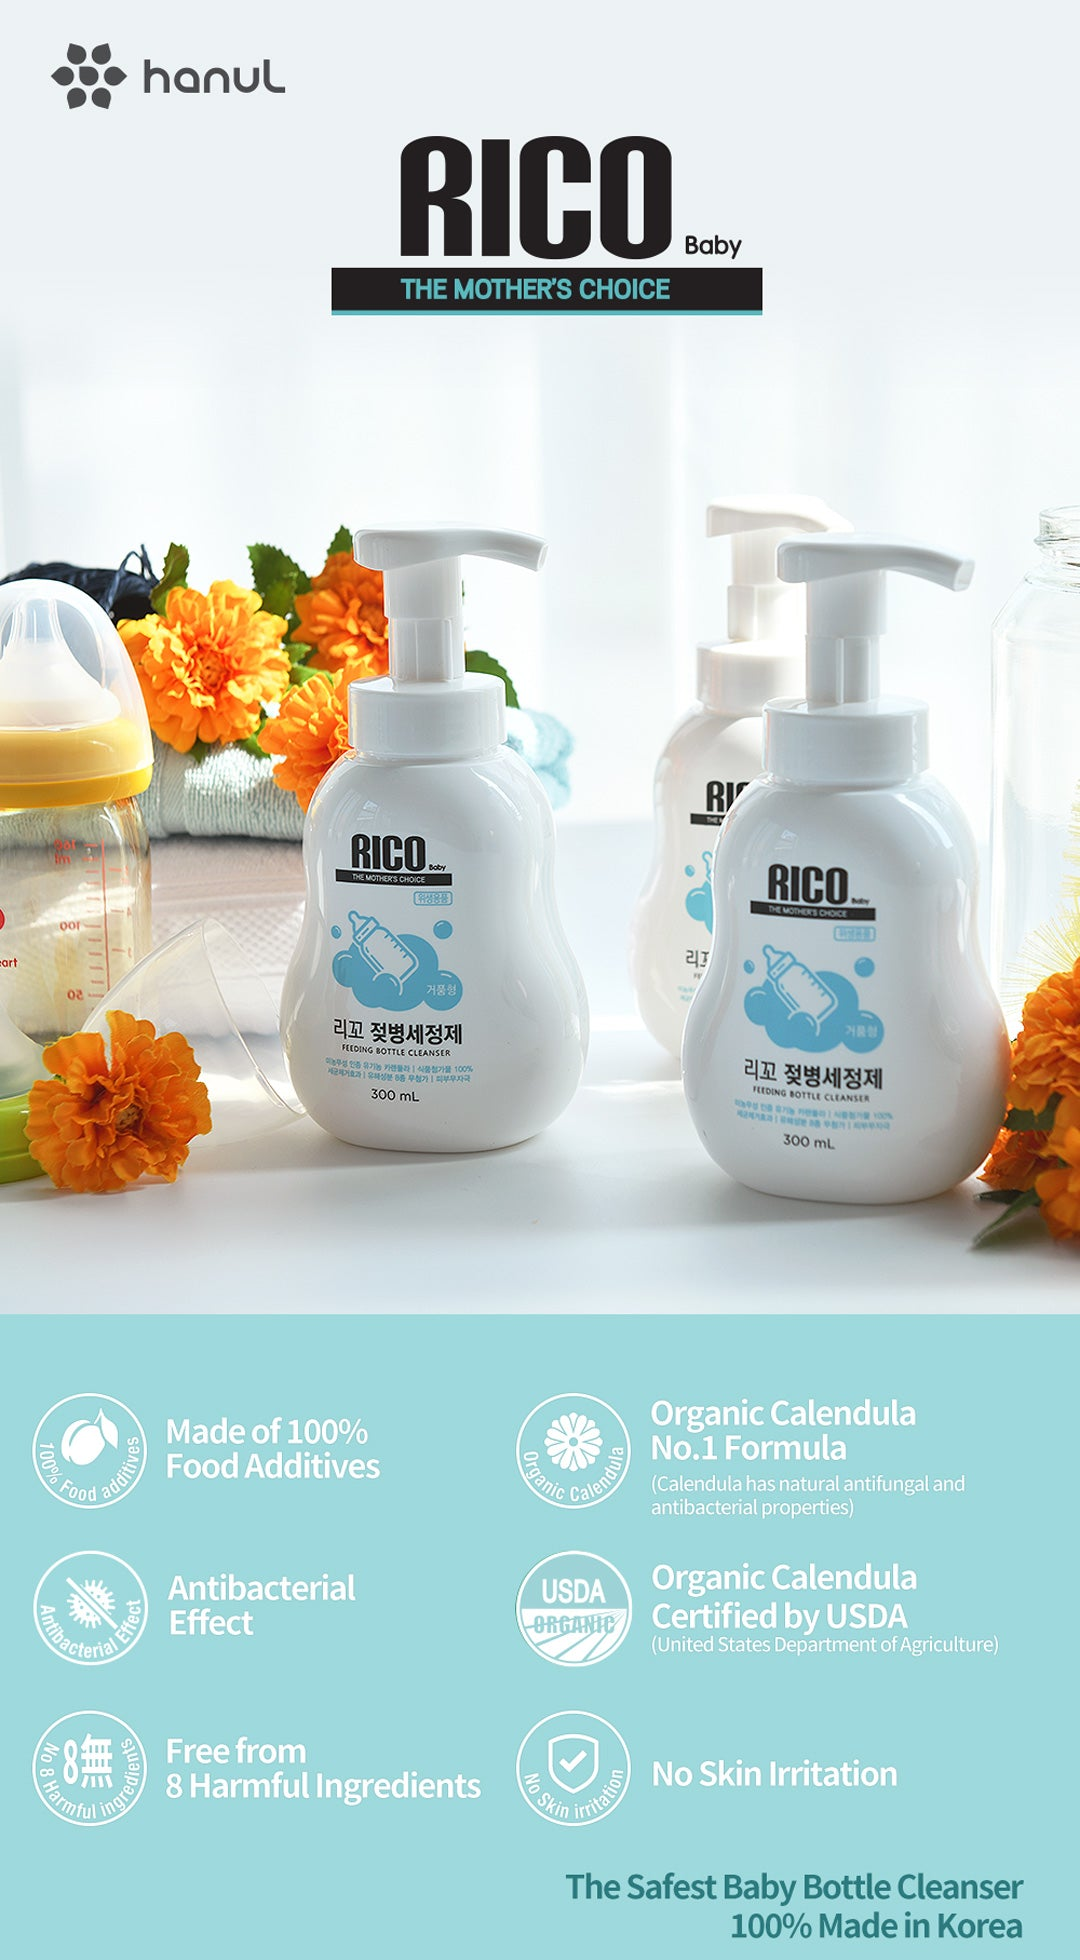 RICO Baby Bottle Cleaner Highlights